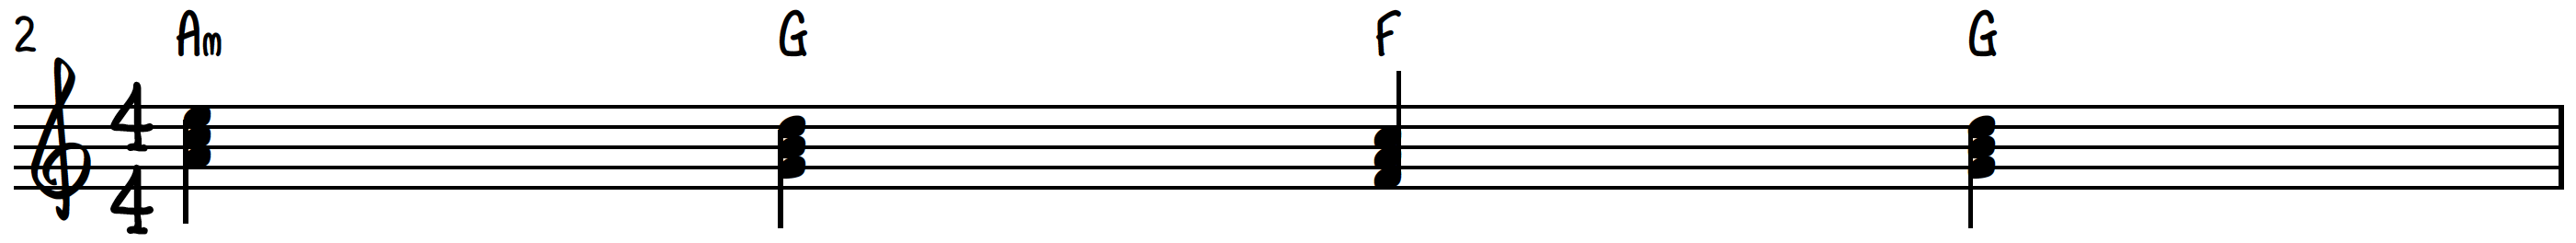 6-5-4-5 root position chords on piano